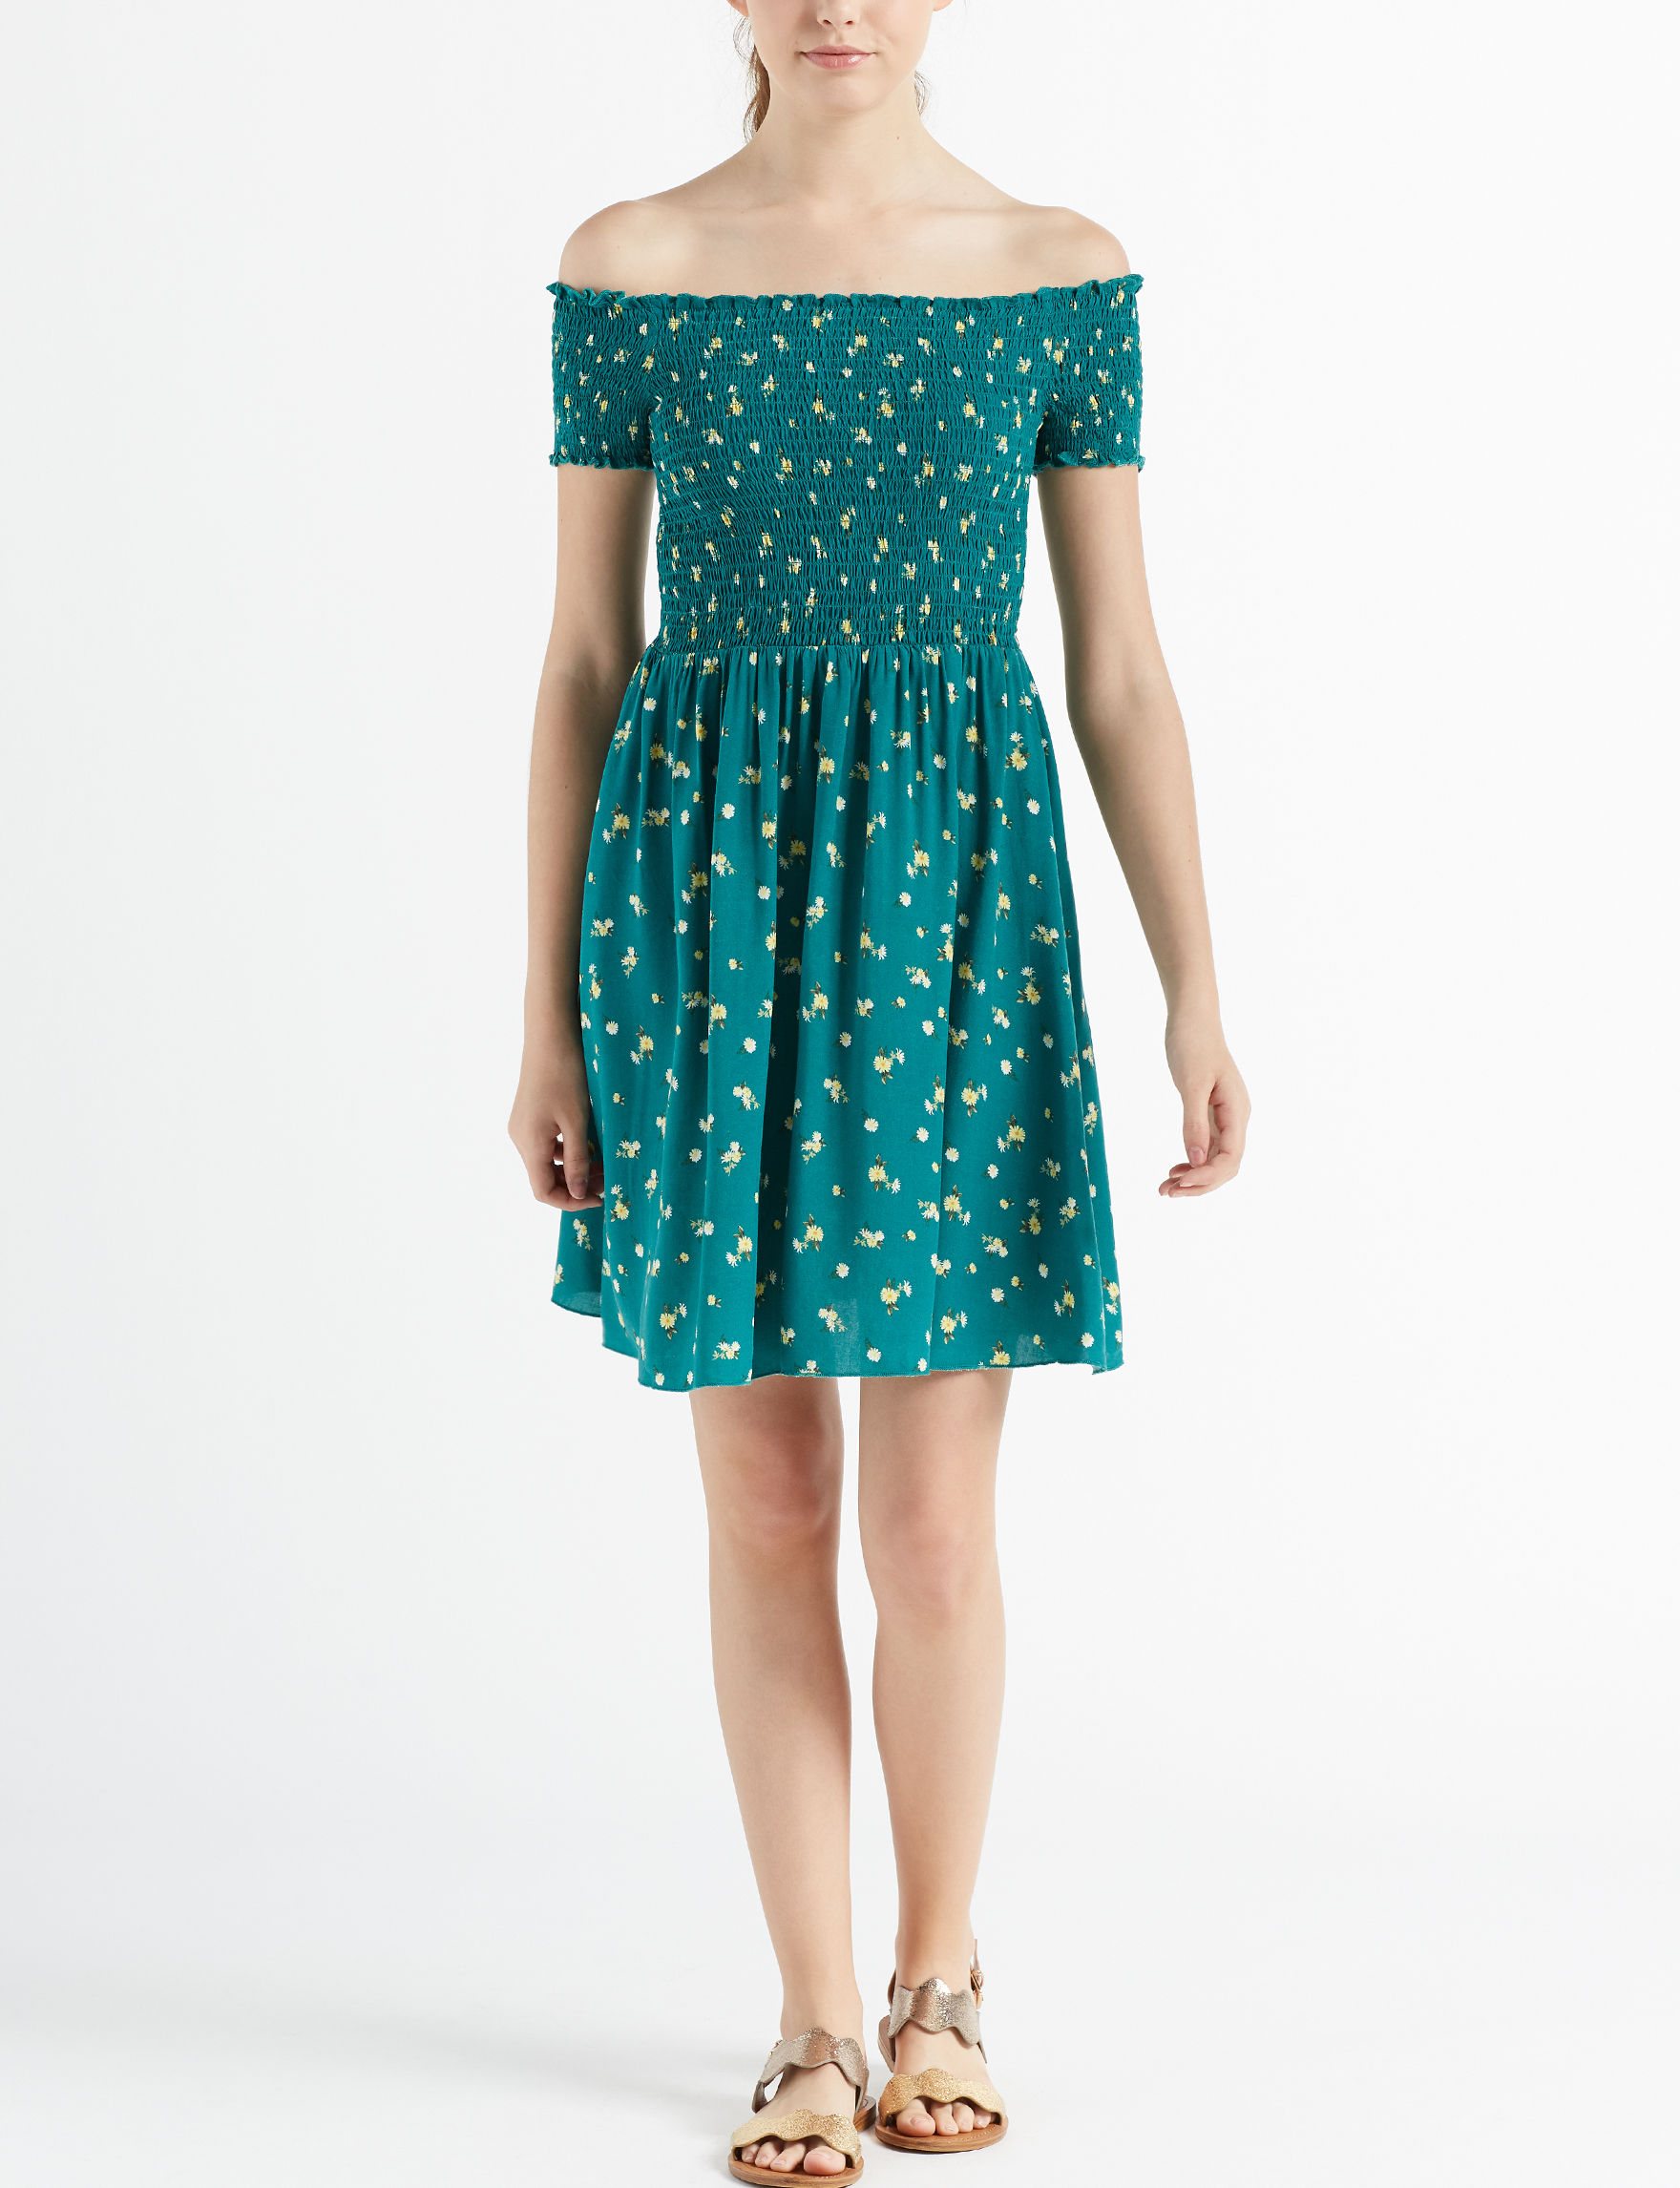 Wishful Park Green Everyday & Casual Fit & Flare Dresses